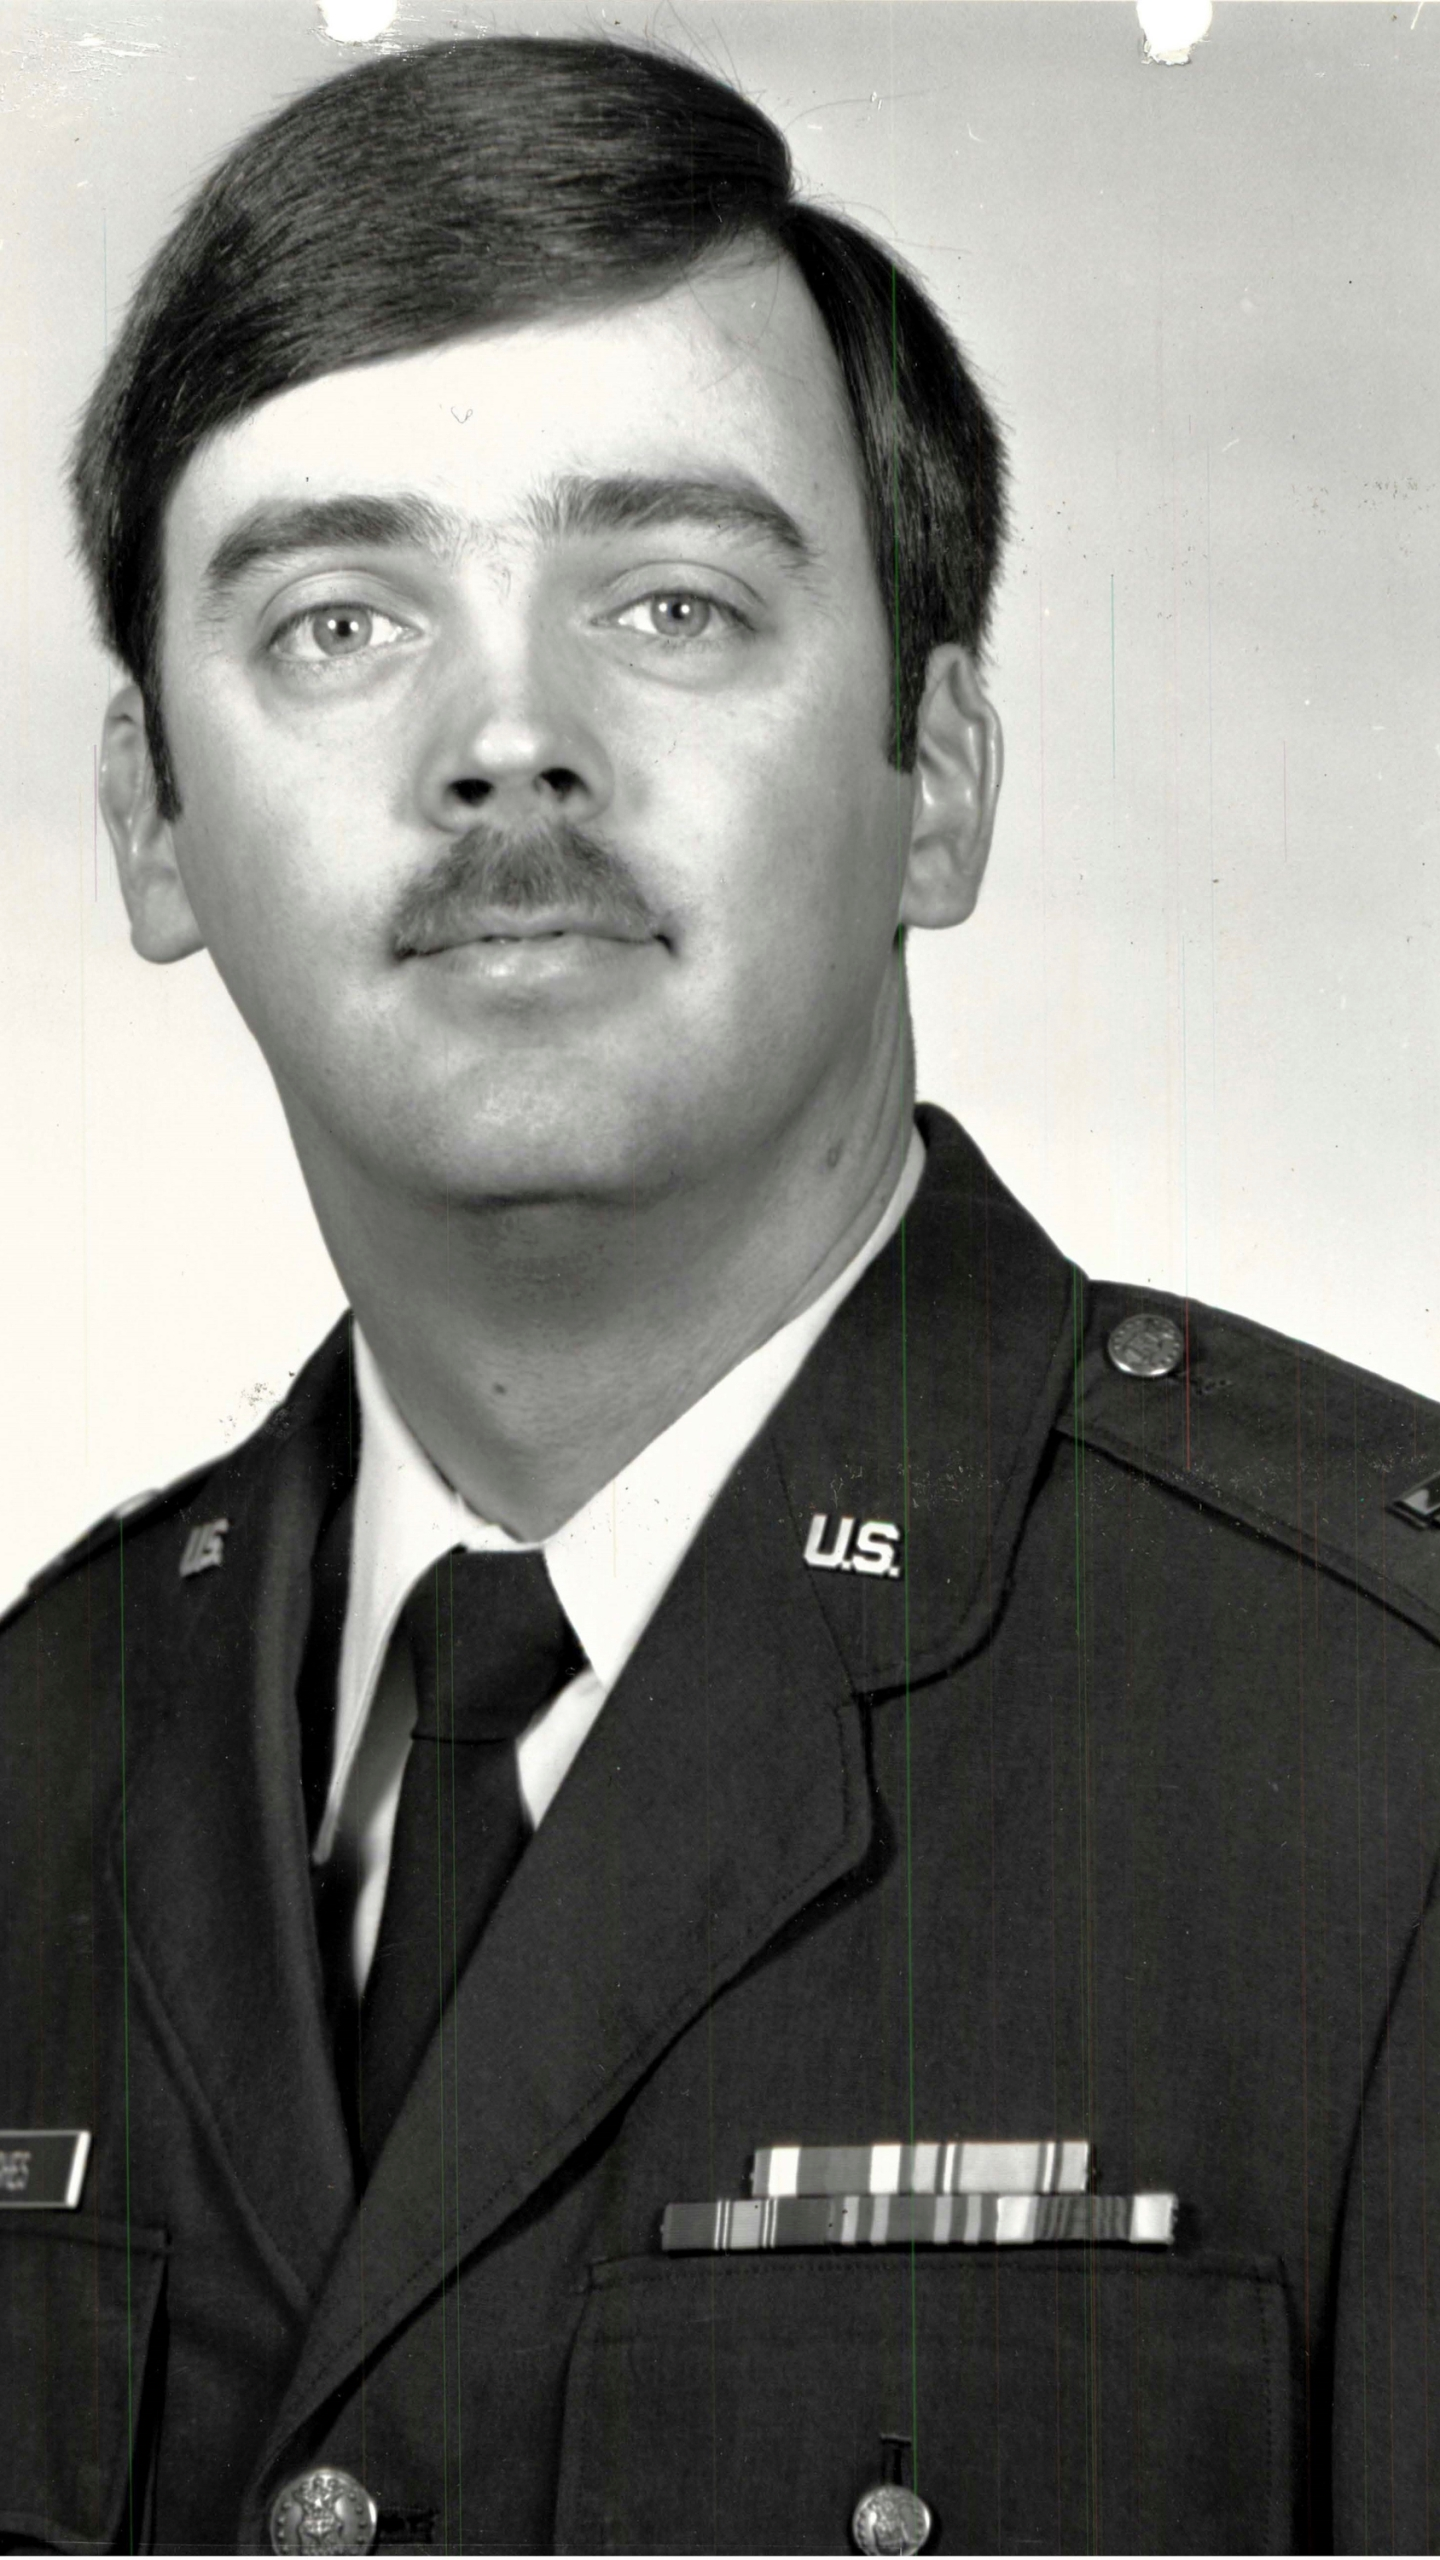 Missing Air Force officer found 35 years later